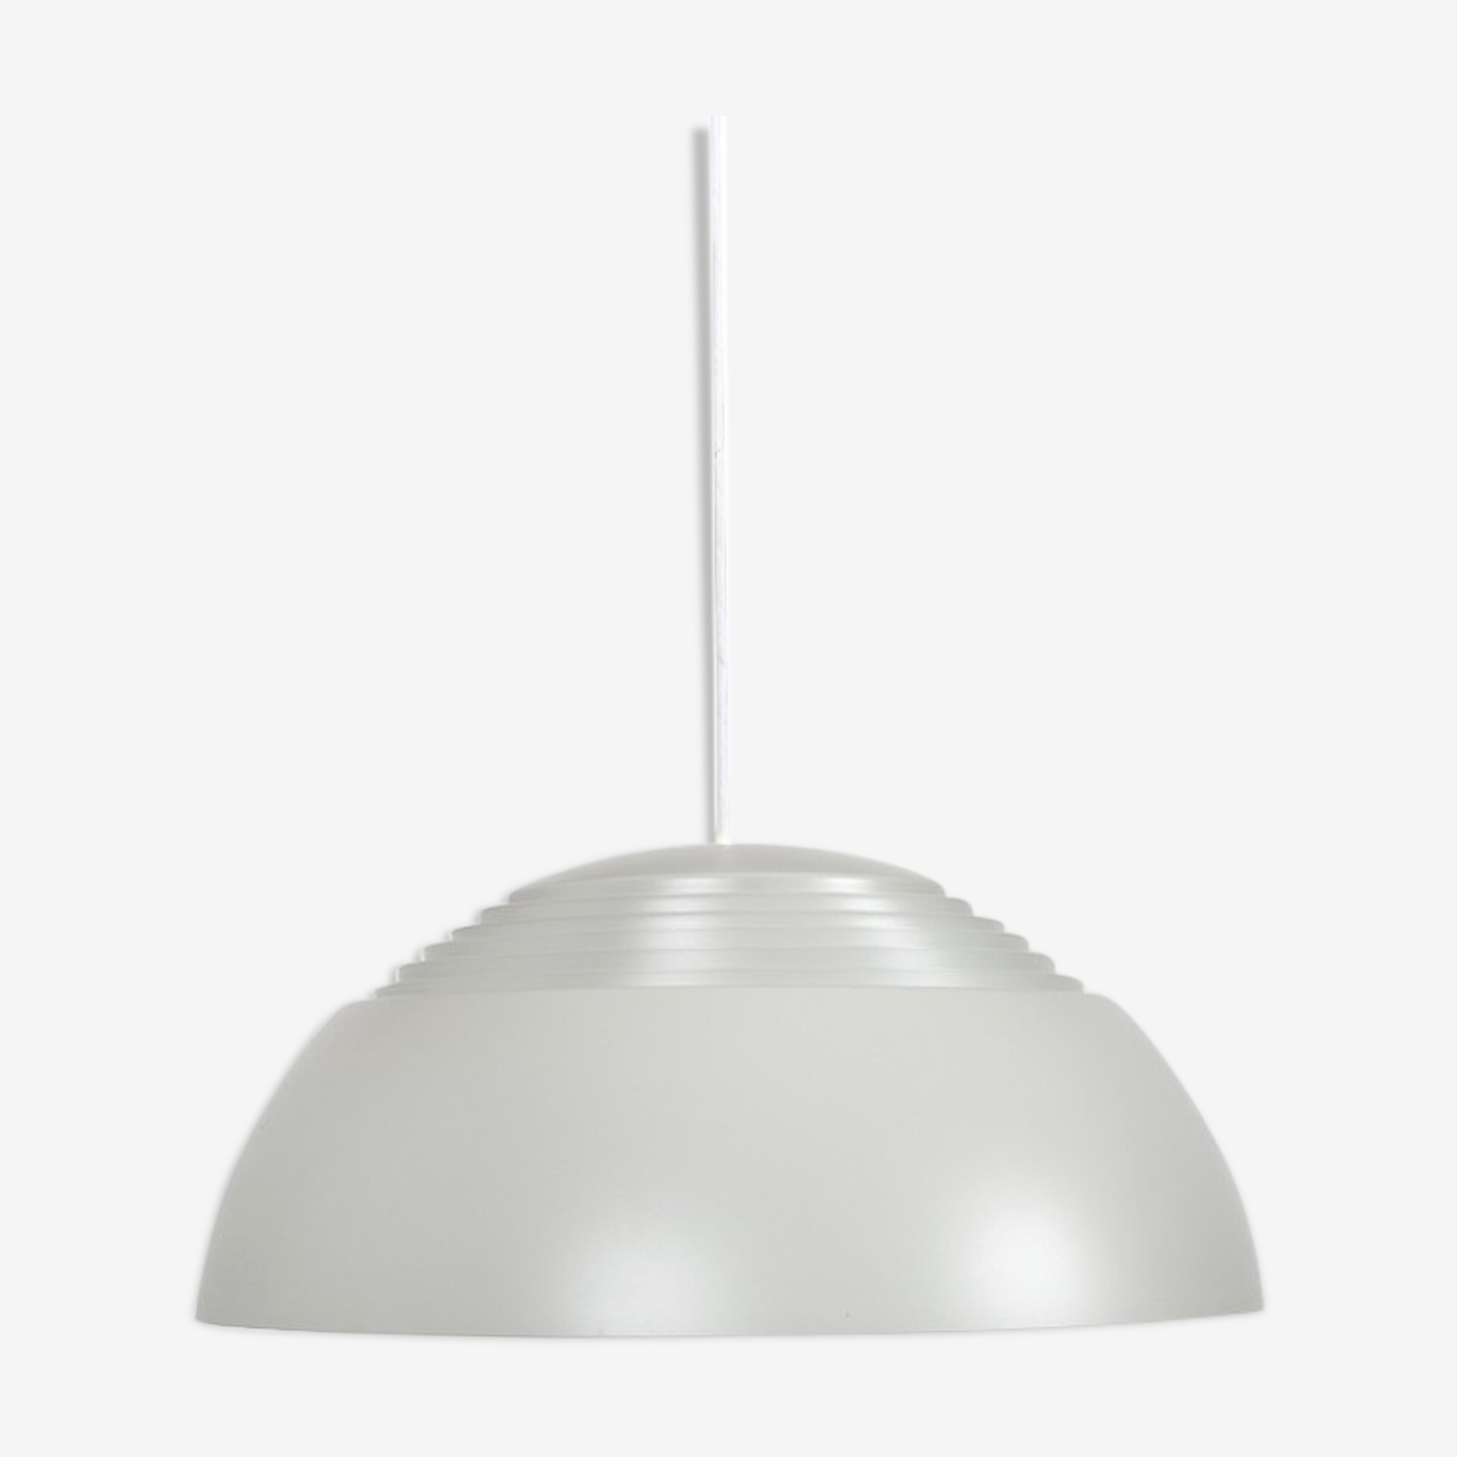 Suspension AJ-Pendel gris par Arne Jacobsen